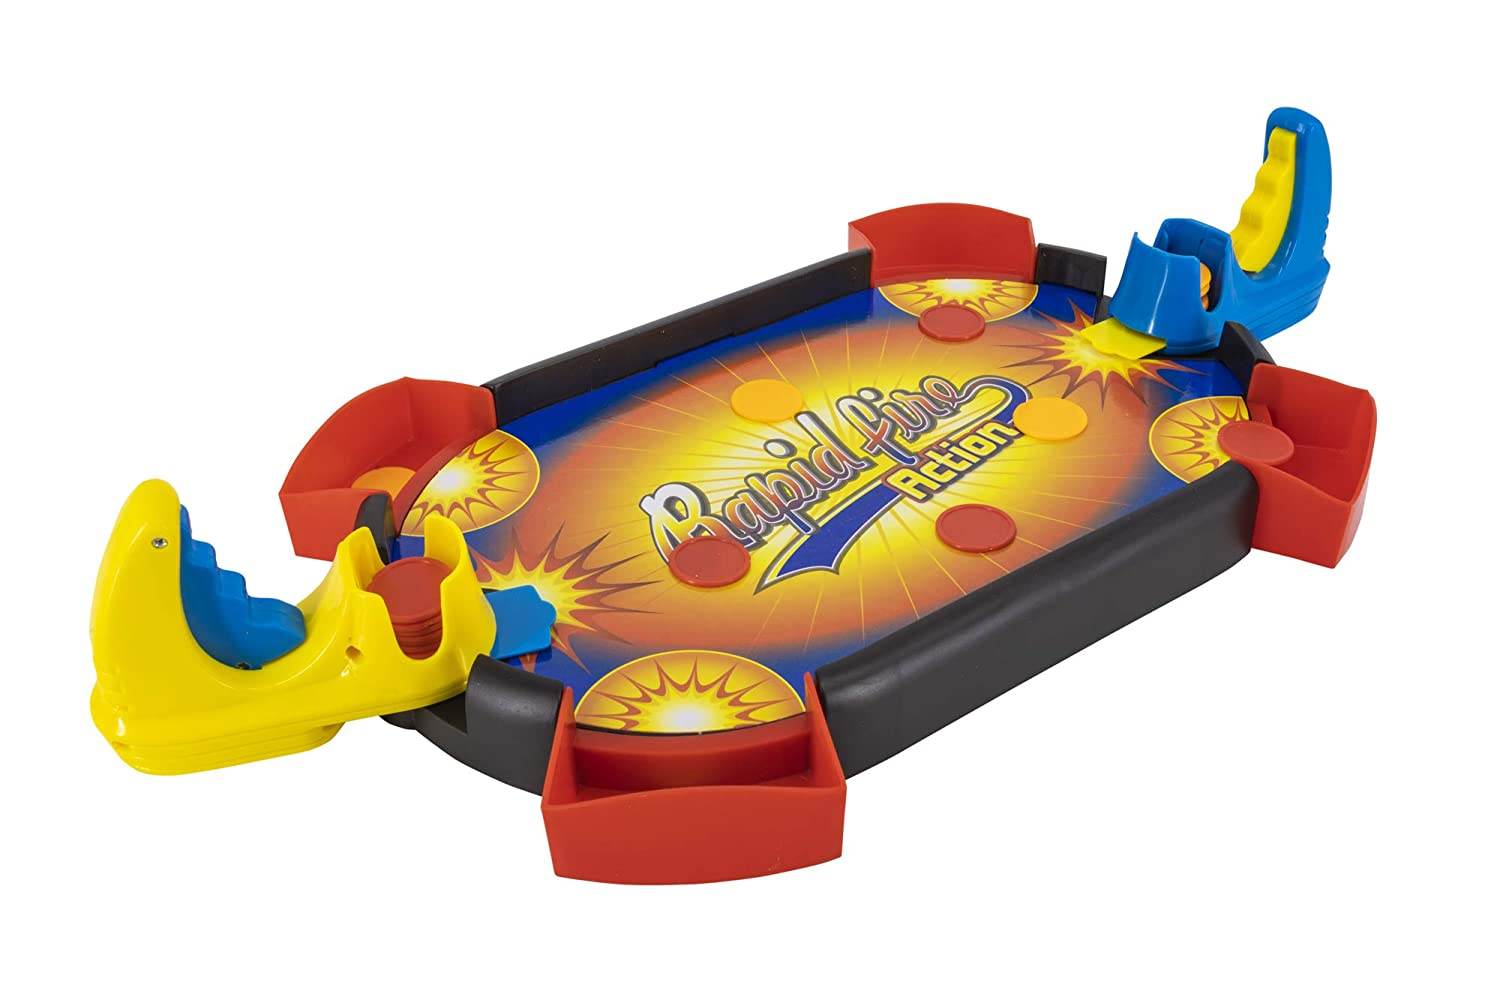 Juego Lanza Discos. Toys Outlet Rapid Fire Action 540275058